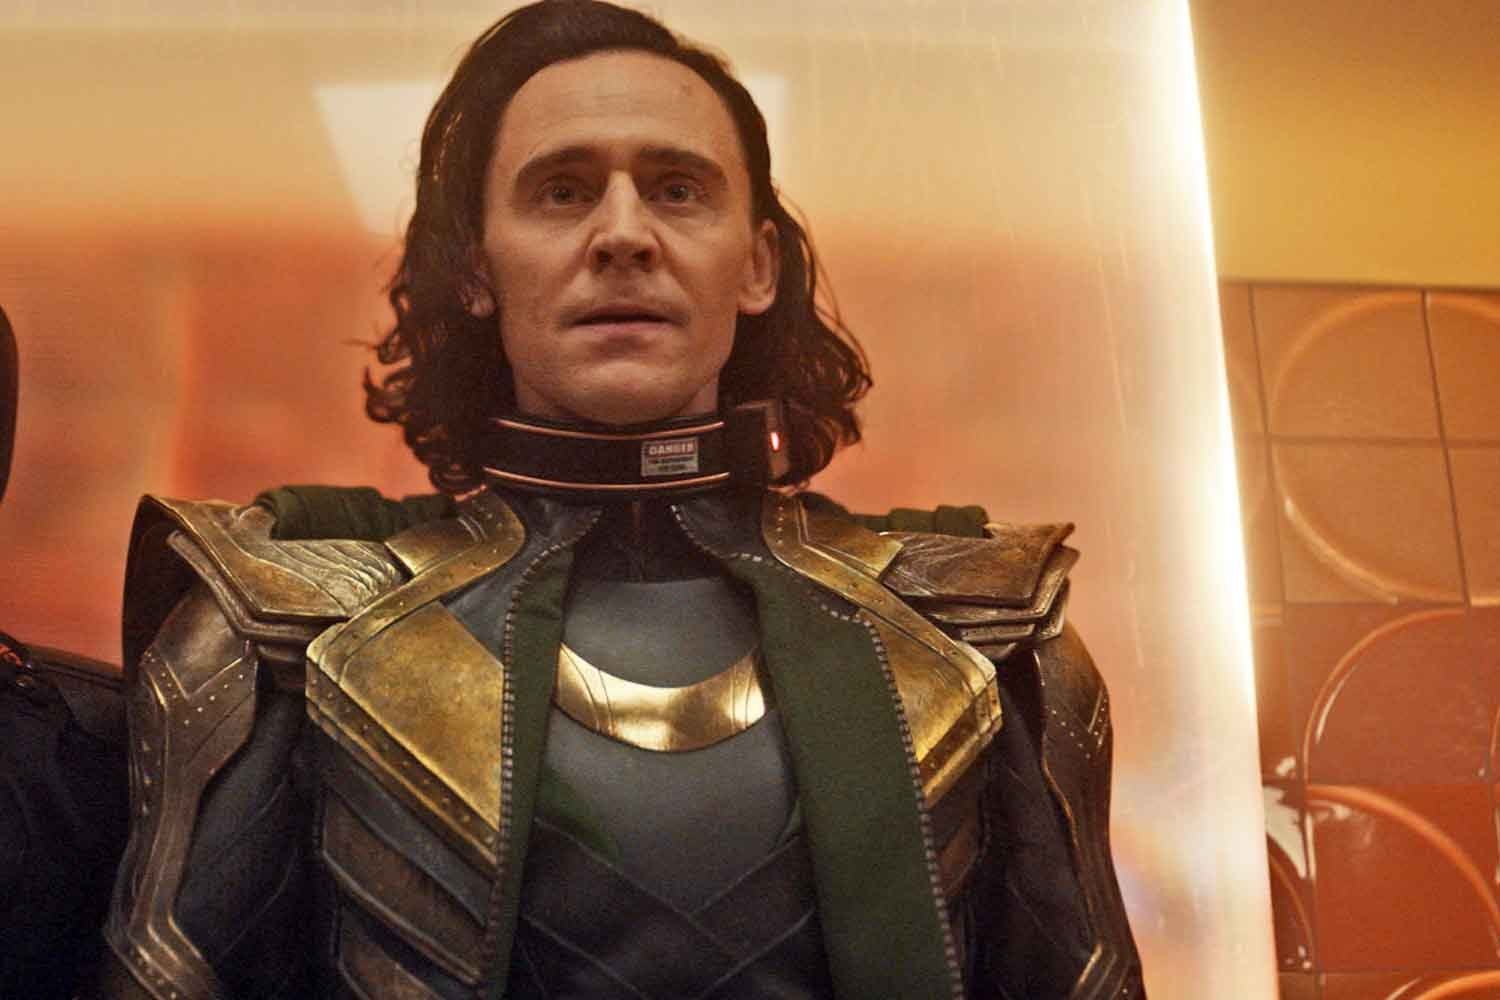 Kang the Conqueror? Variants? Lady Loki? Answers to All Your Questions About Disney+'s Loki